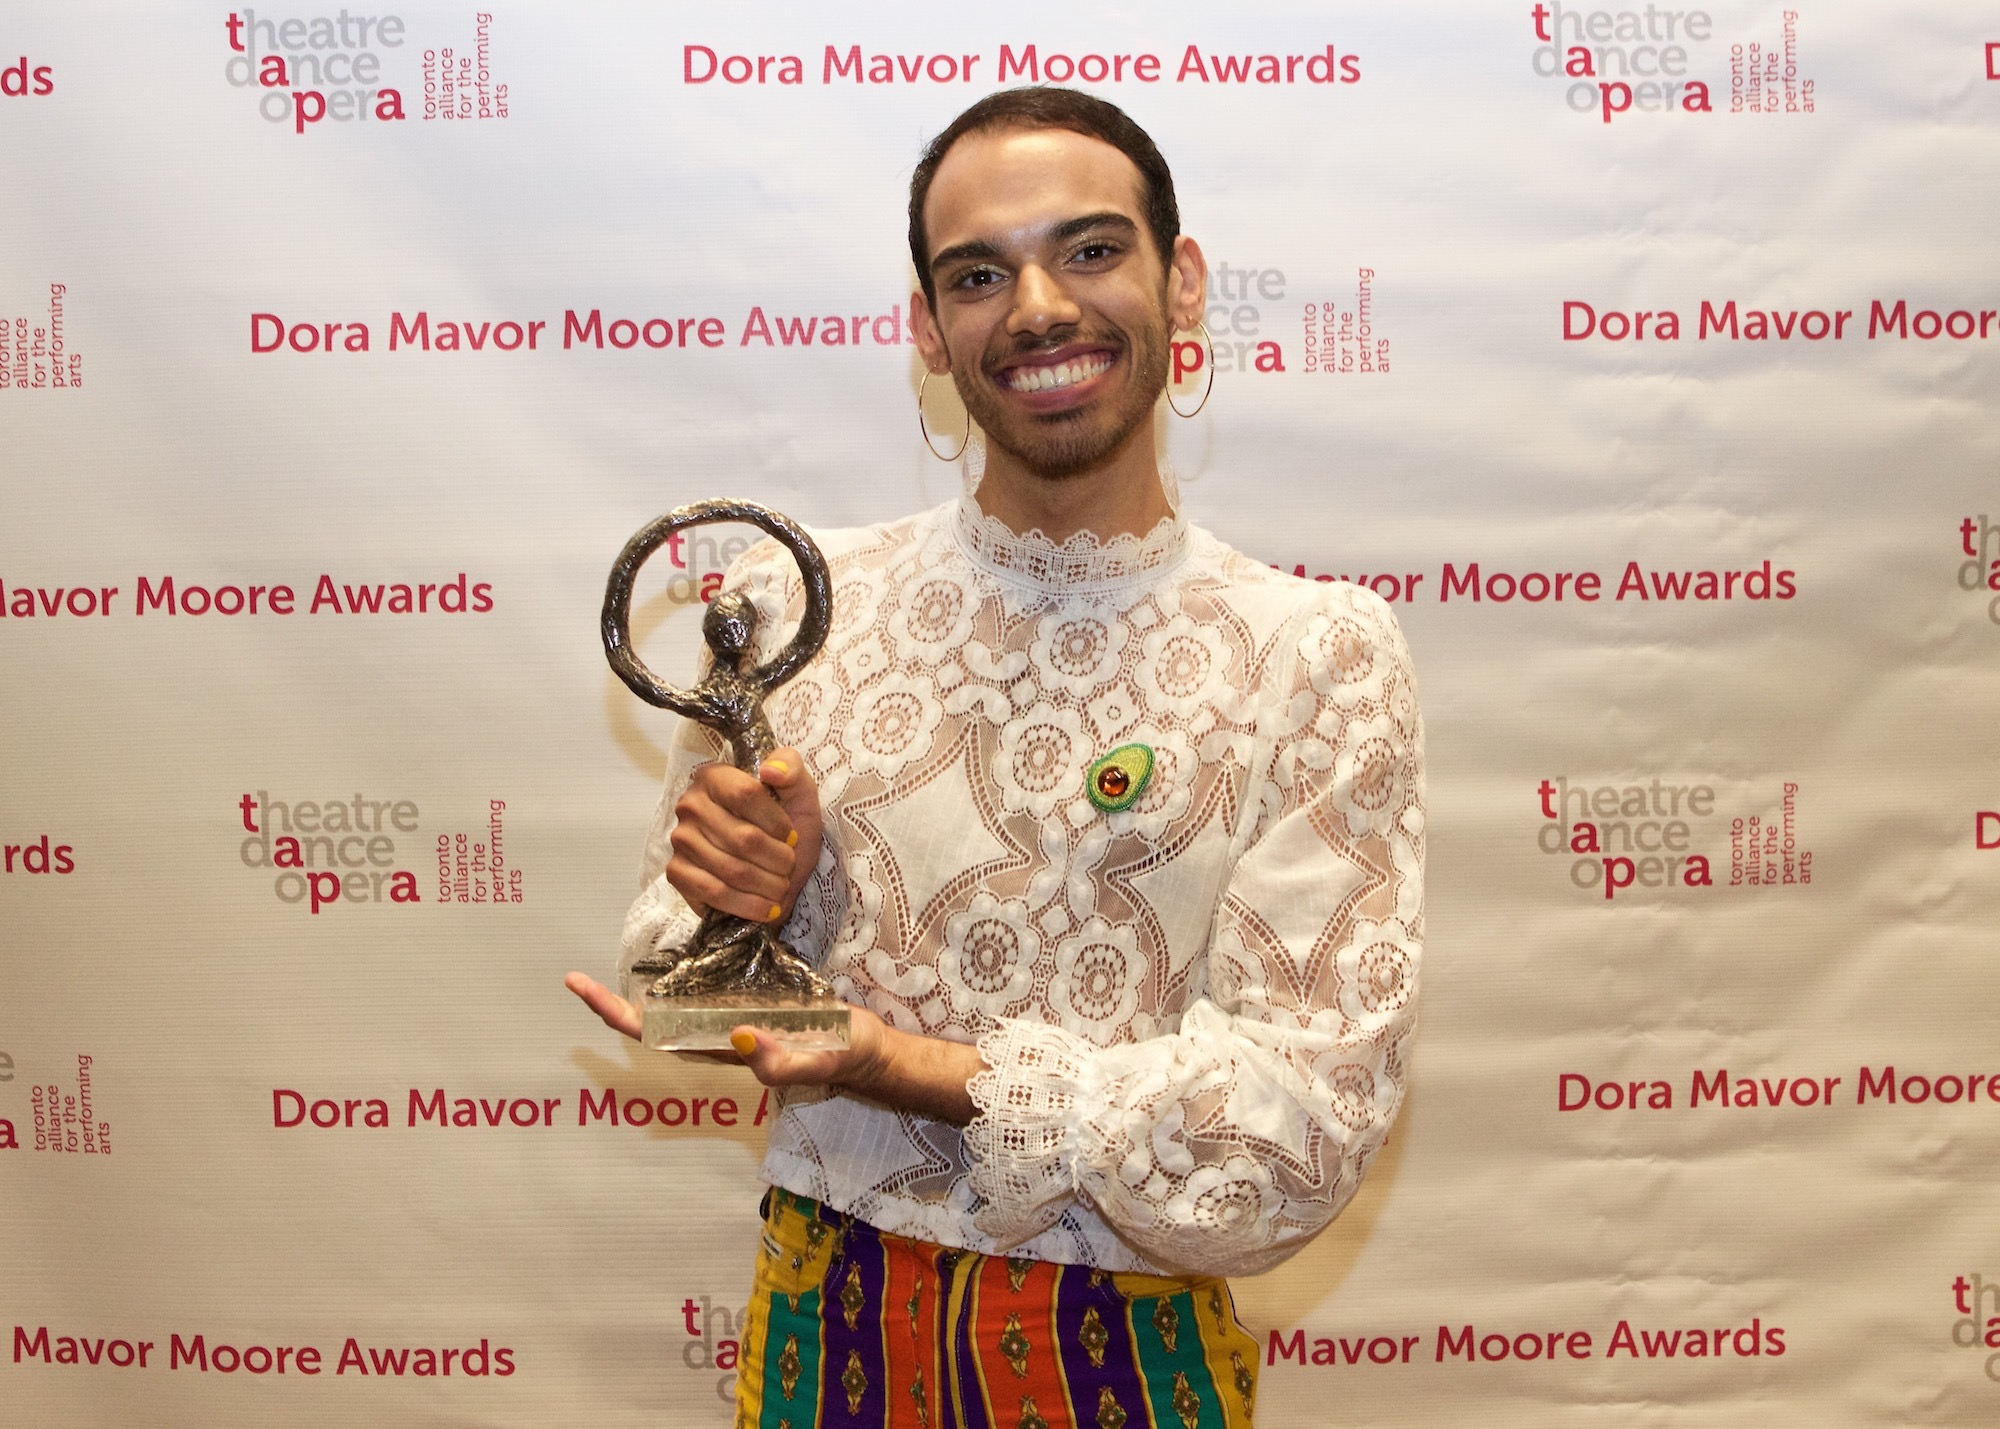 Augusto Bitter and his Dora Mavor Moore award for outstanding performance of an individual. CHICHO was also nominated for outstanding new play.